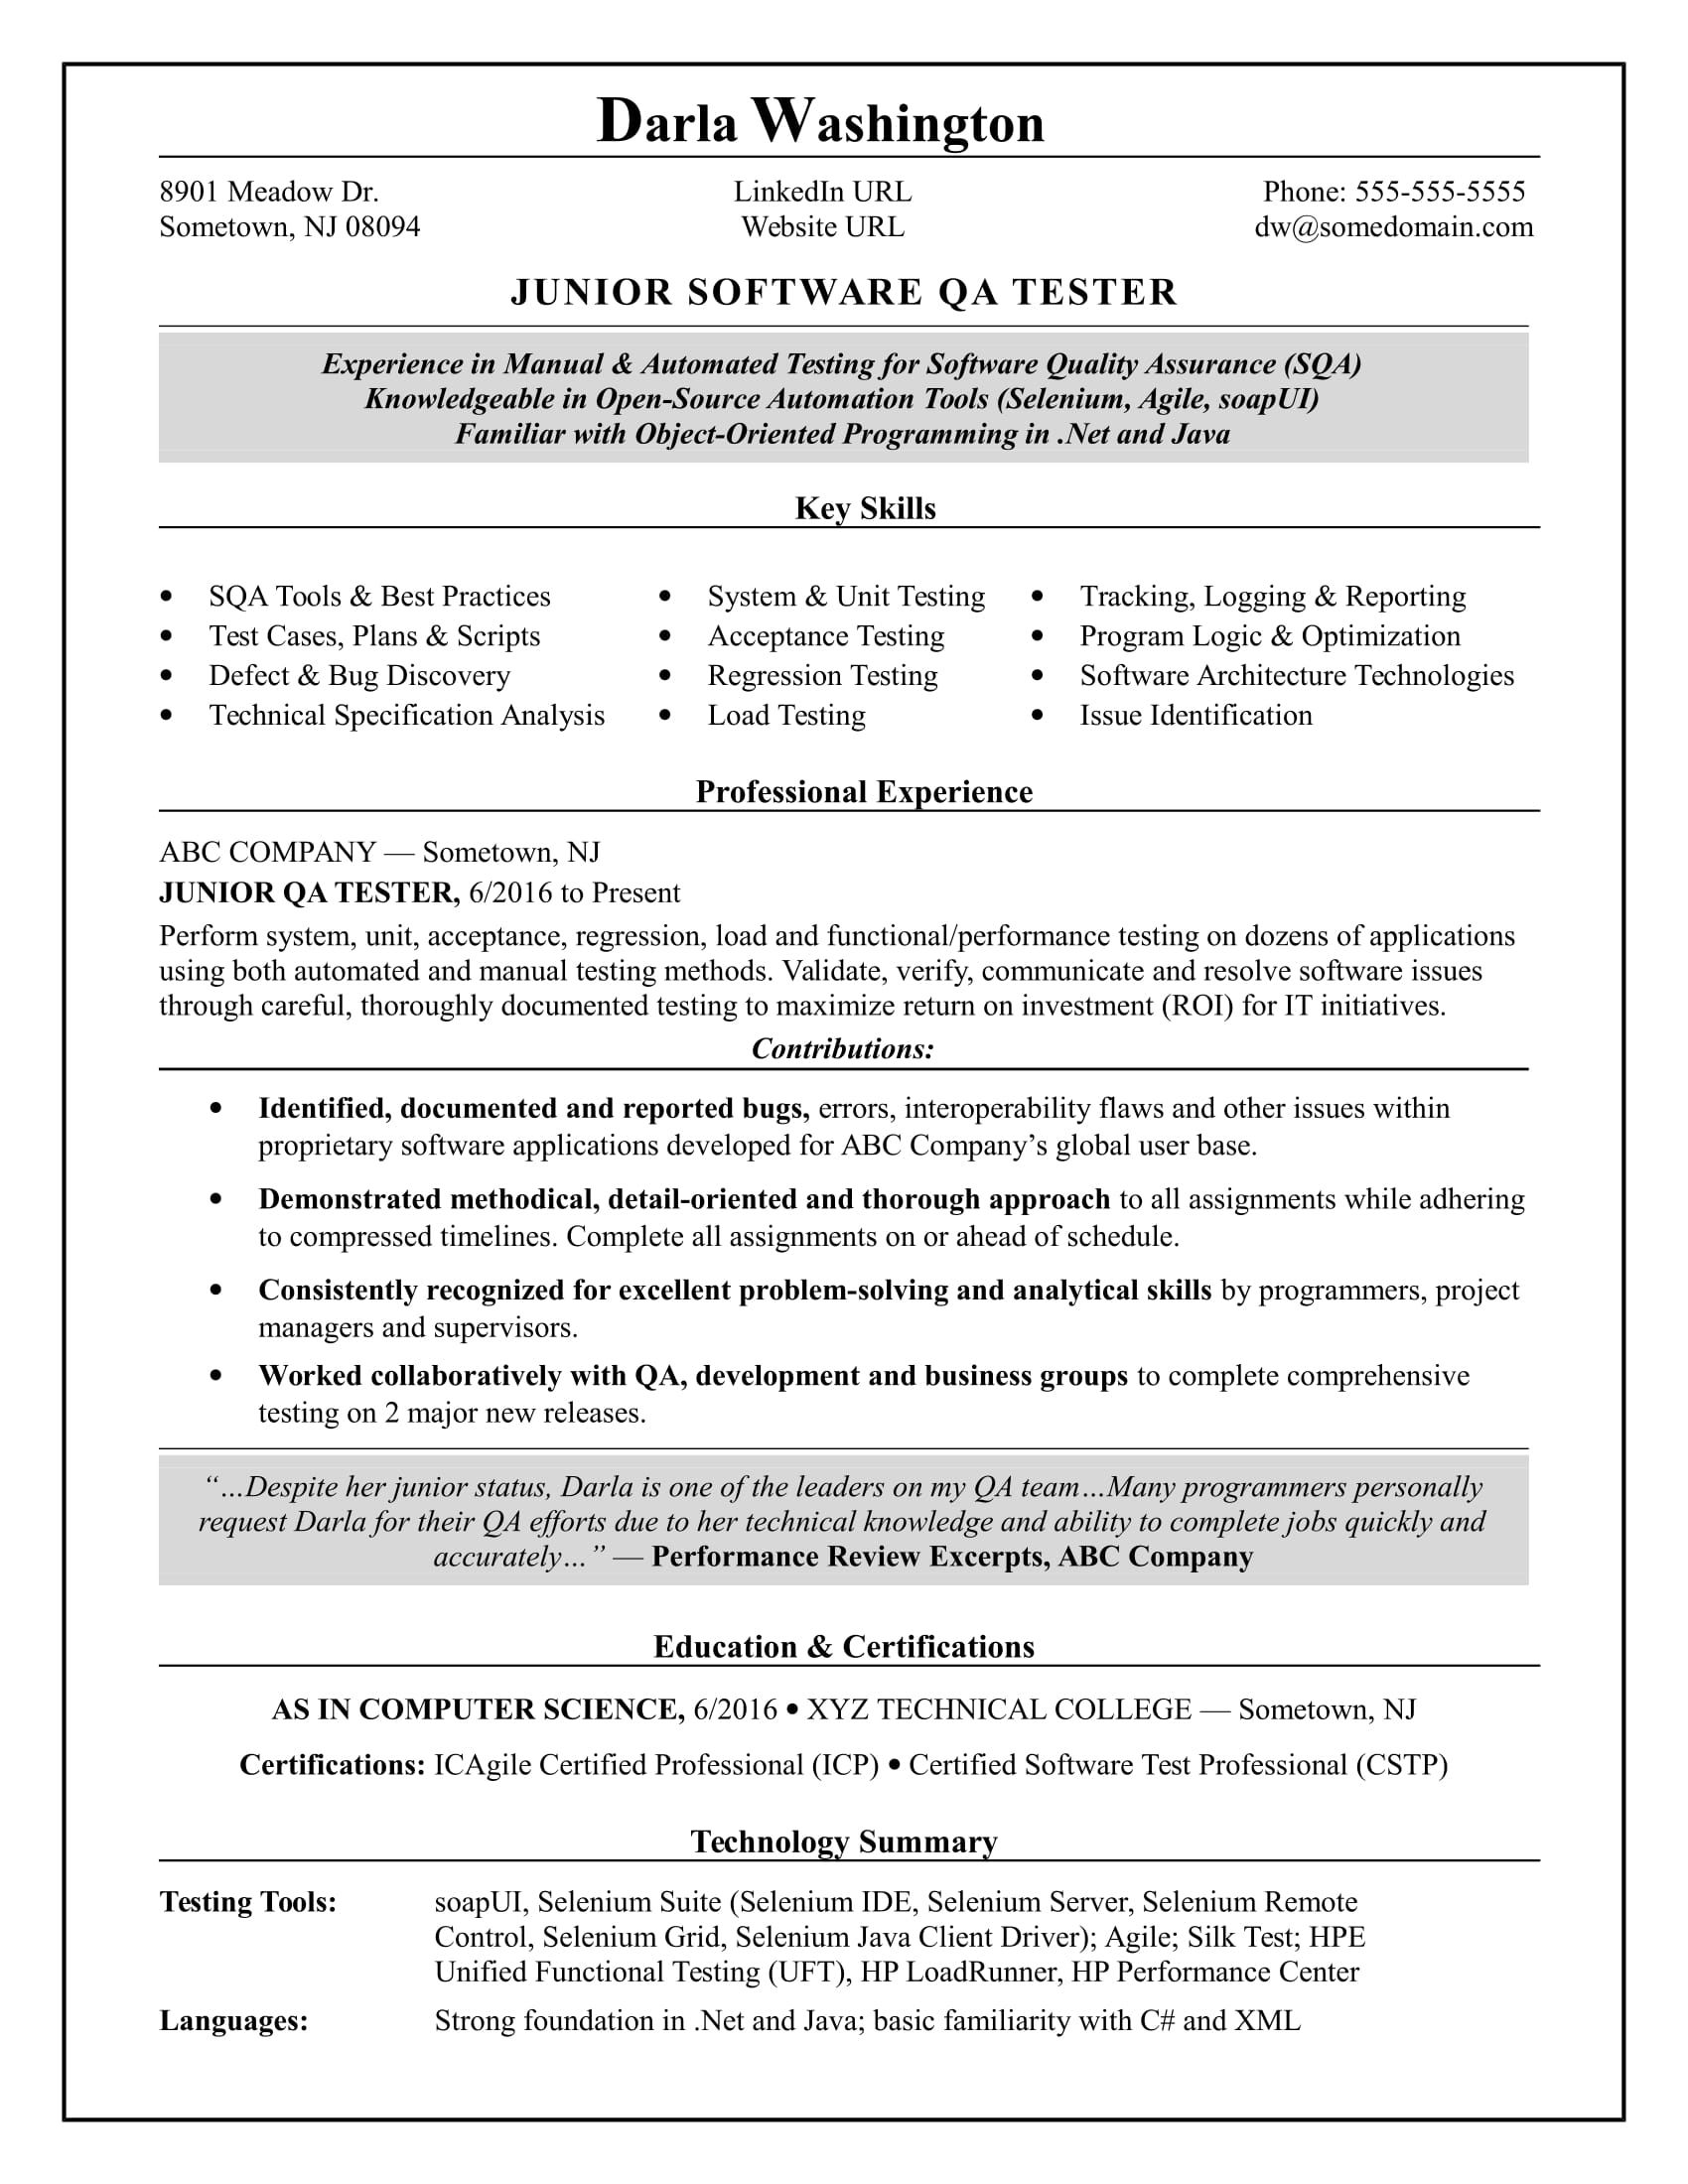 Technical Skills Of Software Tester Resume